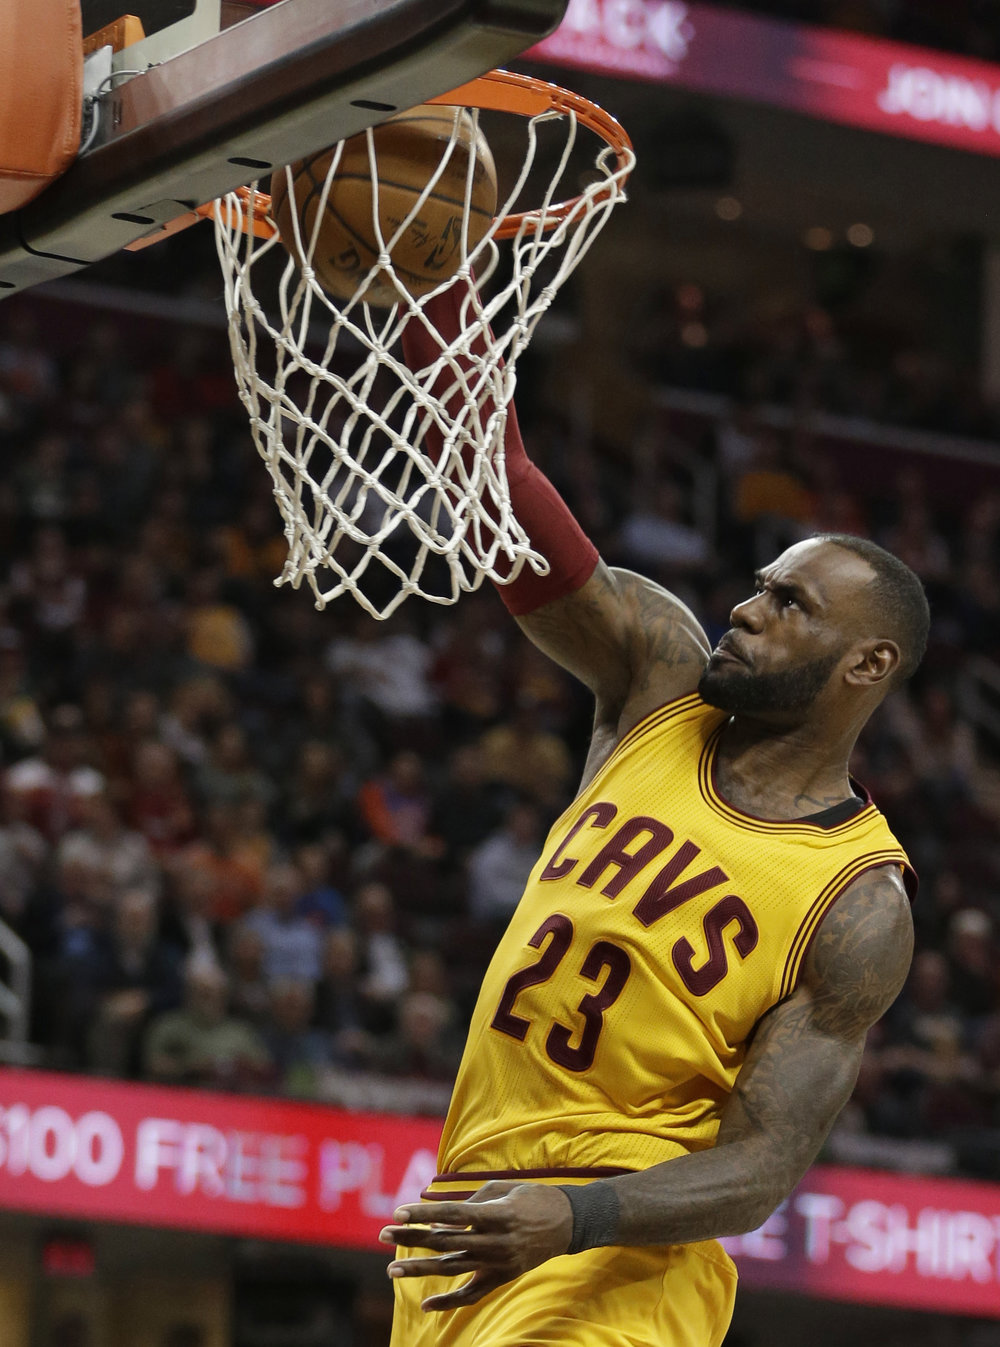 LeBron James of the Cleveland Cavaliers dunks the ball during the first half of a game against the Millkwaukee Bucks on Monday Feb. 27. Many players seem to be making questionable financial decisions when signing contracts with teams. (Tony Dejak/AP Photo)